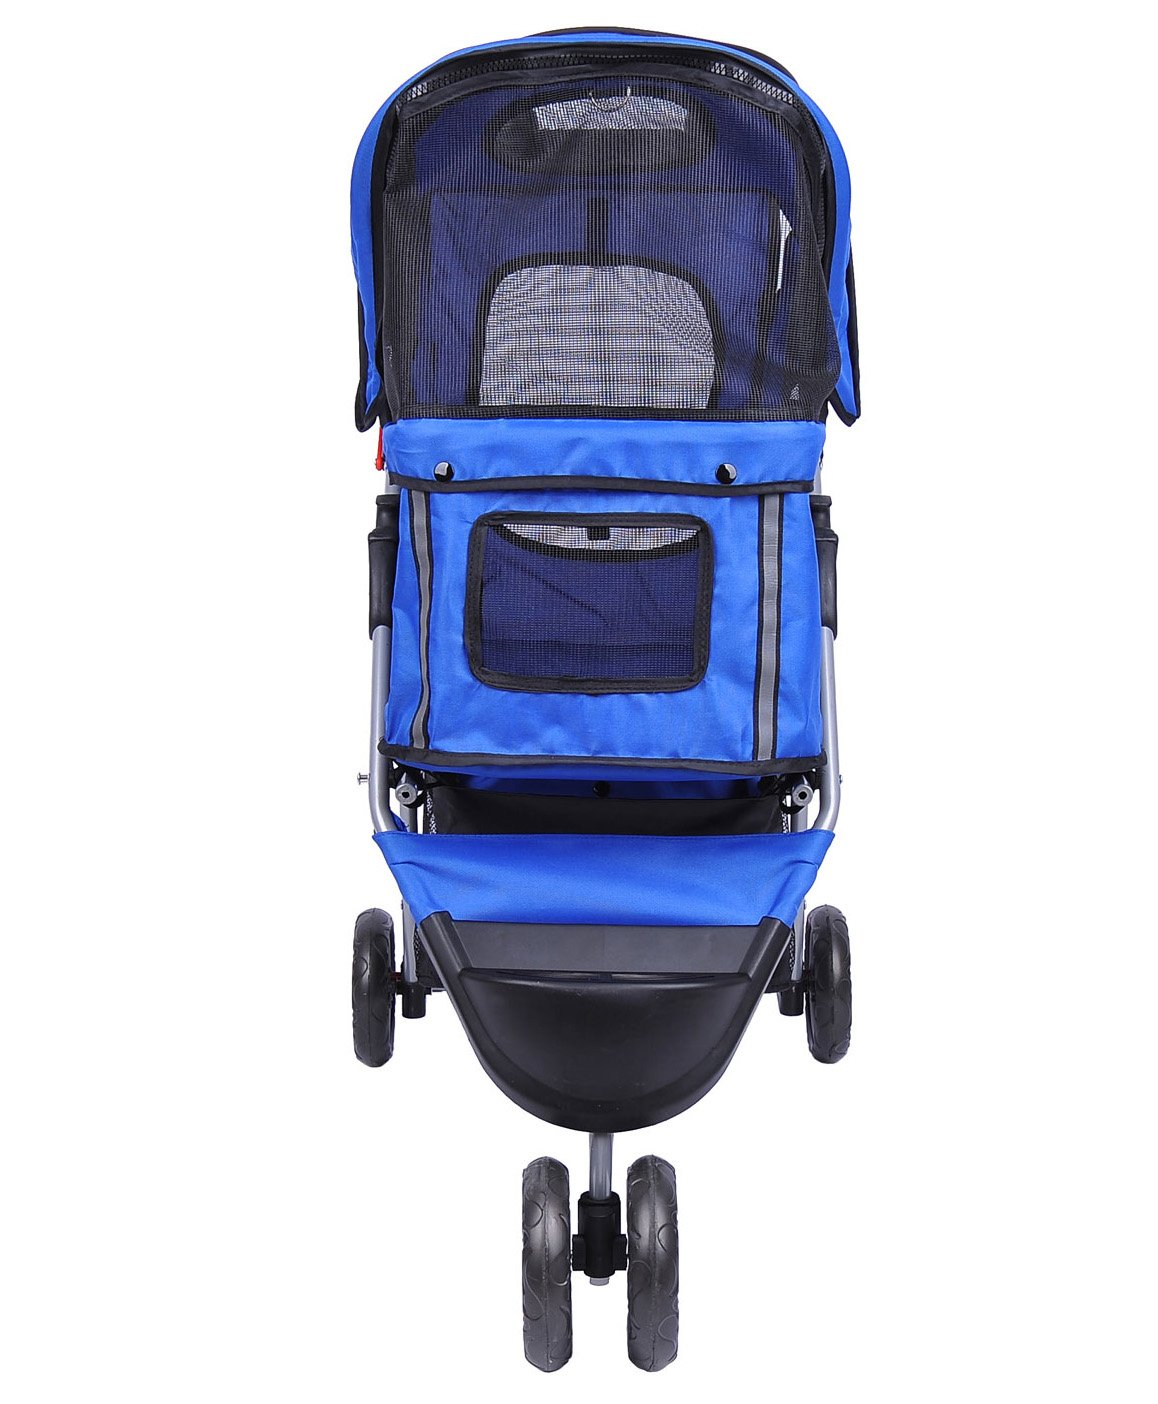 MDOG2 MK0015A 3-Wheel Front and Rear Entry Pet Stroller, Blue by MDOG2 (Image #5)